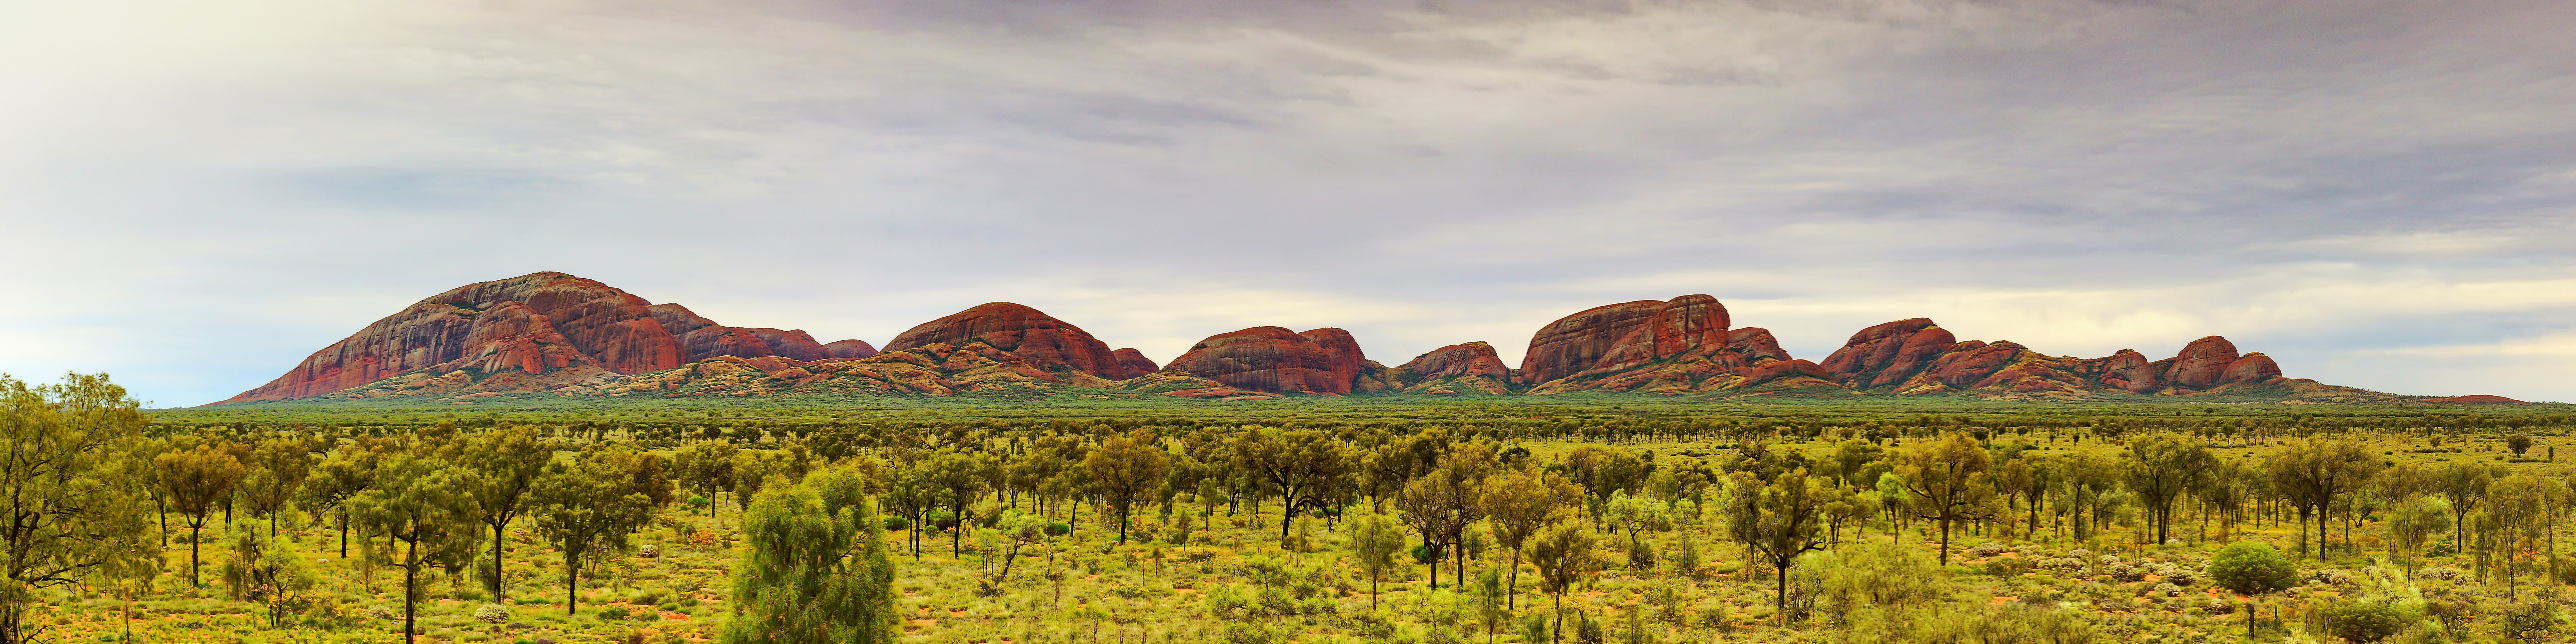 Panoramic view of Kata-Tjuta in the early morning.jpg